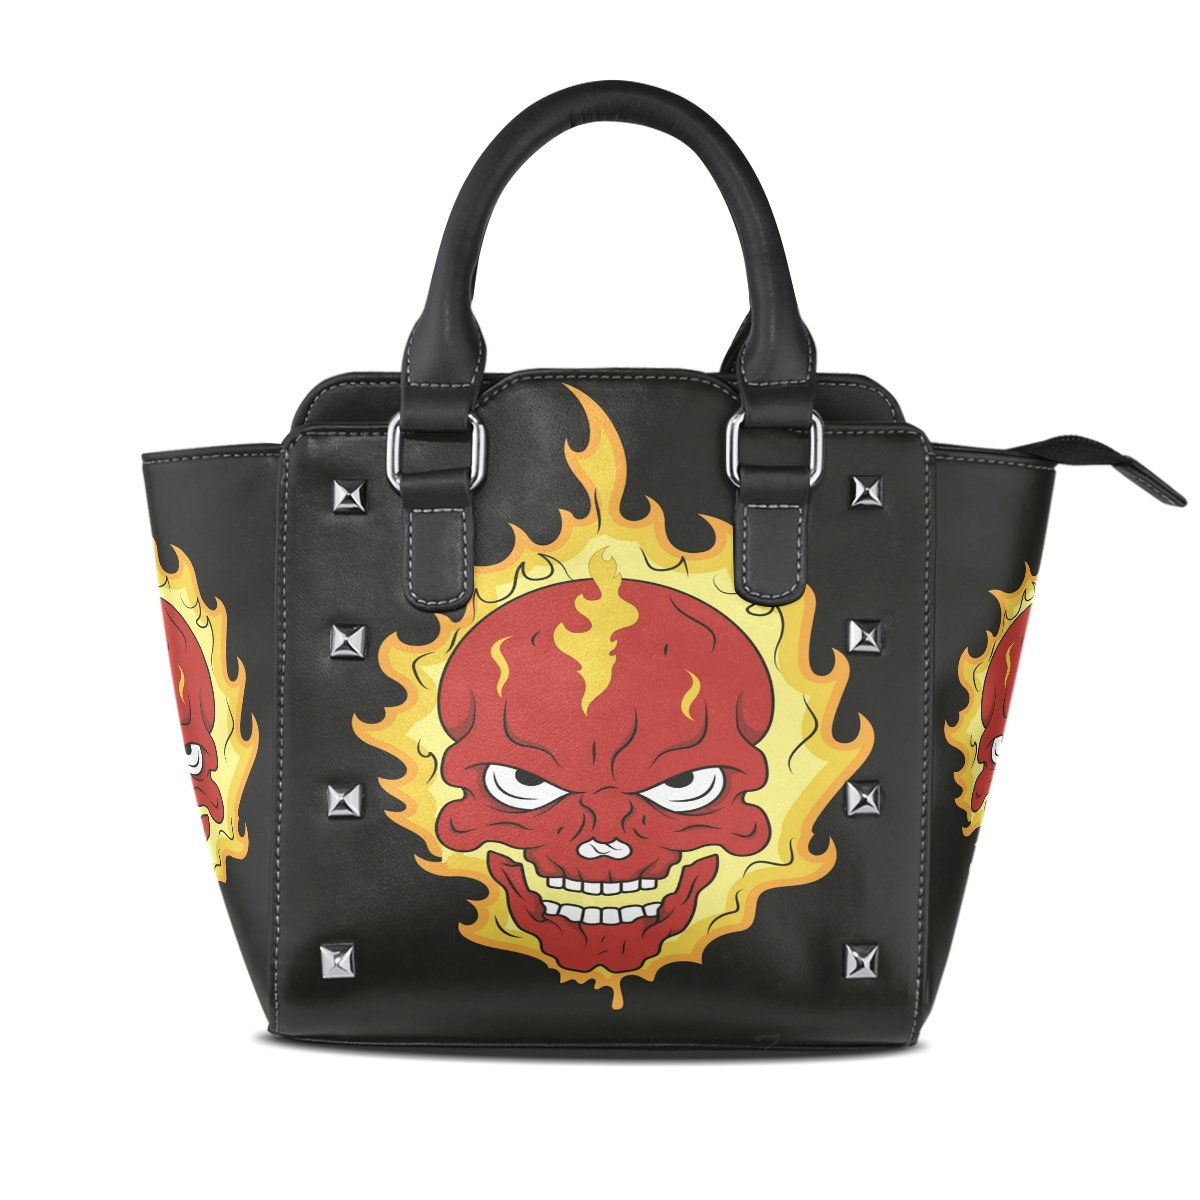 Womens Genuine Leather Hangbags Tote Bags Angry Skull Purse Shoulder Bags